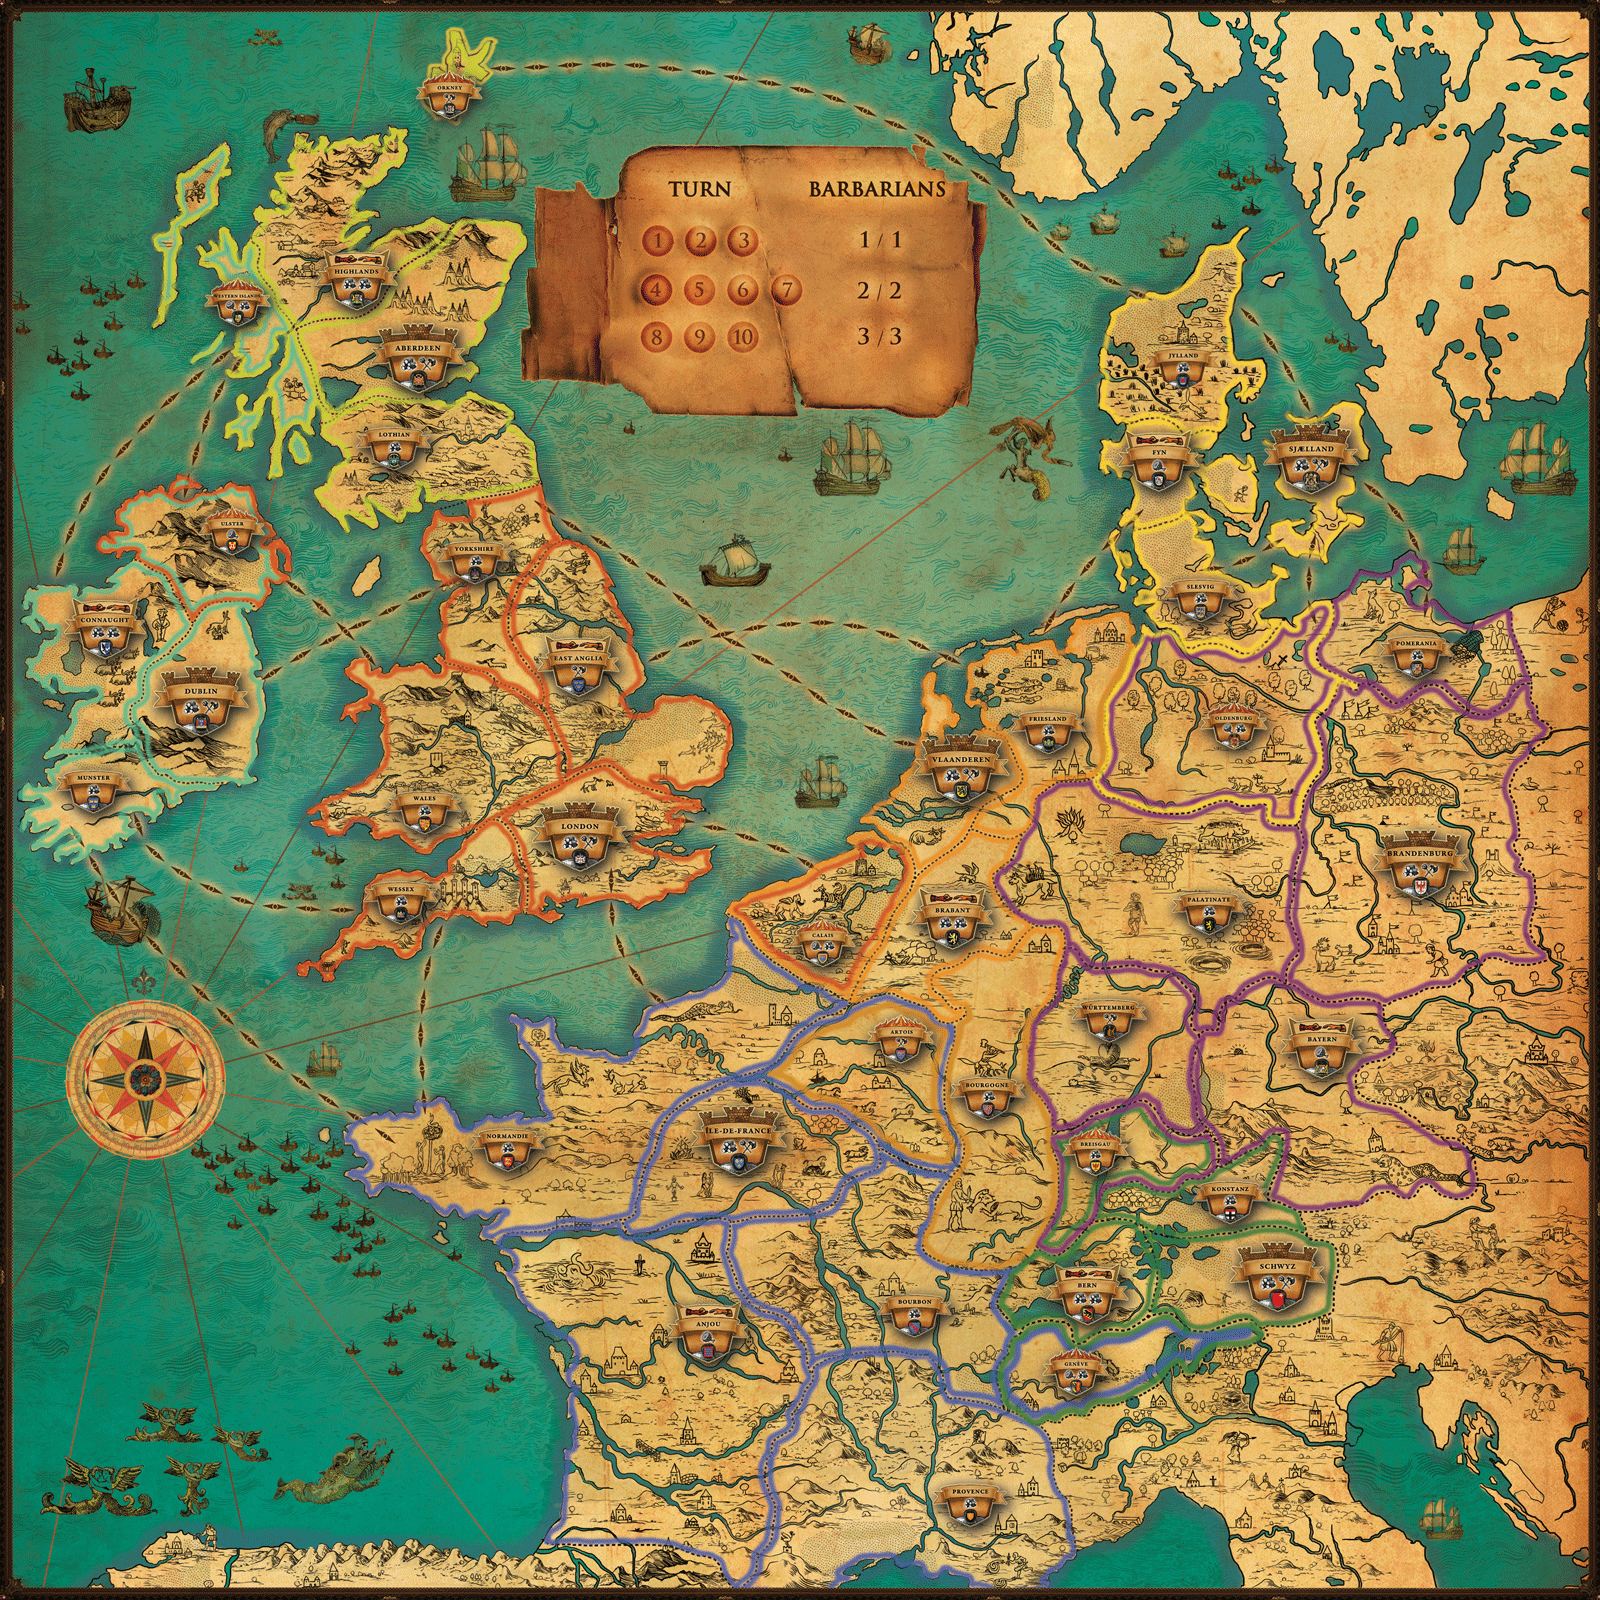 The map.. Middle Ages of Europe.. Who want's to play